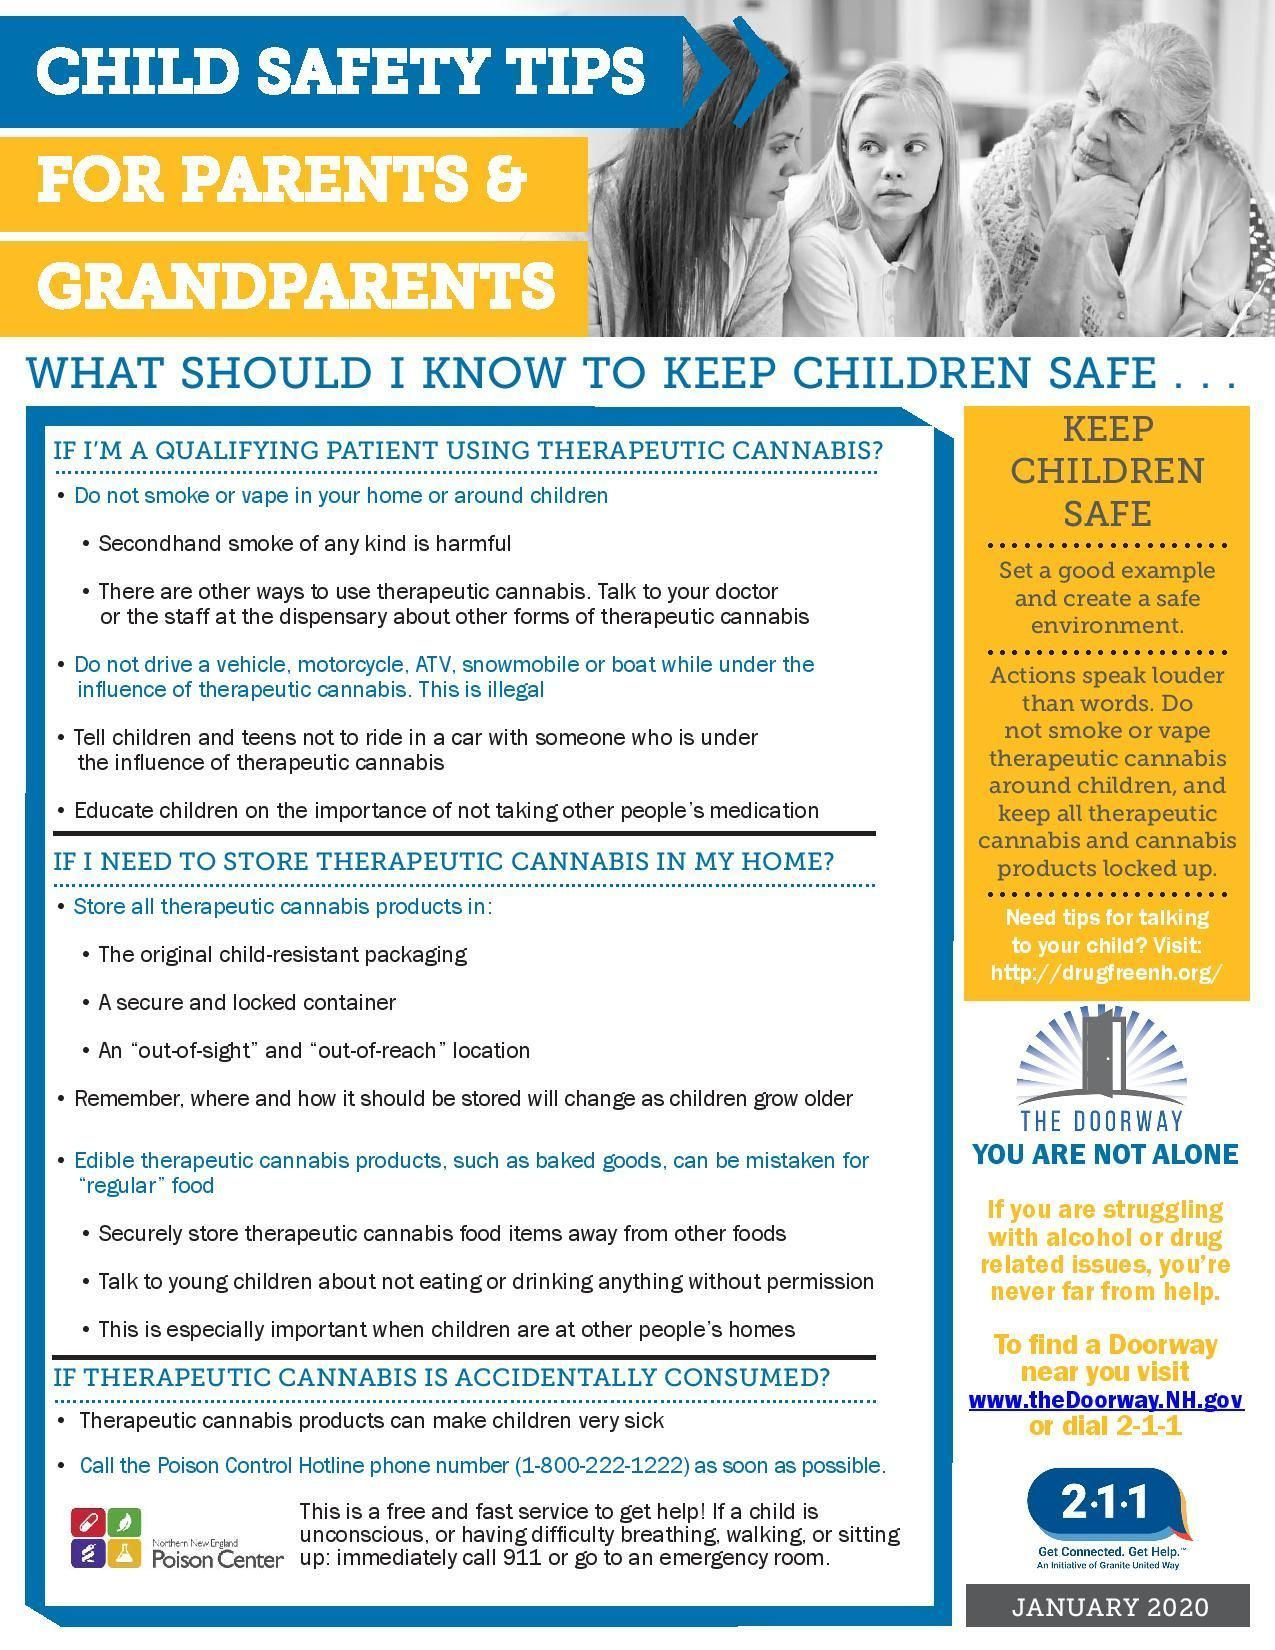 Child Safety Tips for Parents & Grandparents to keep children safe - TherapeuticCannabis Users